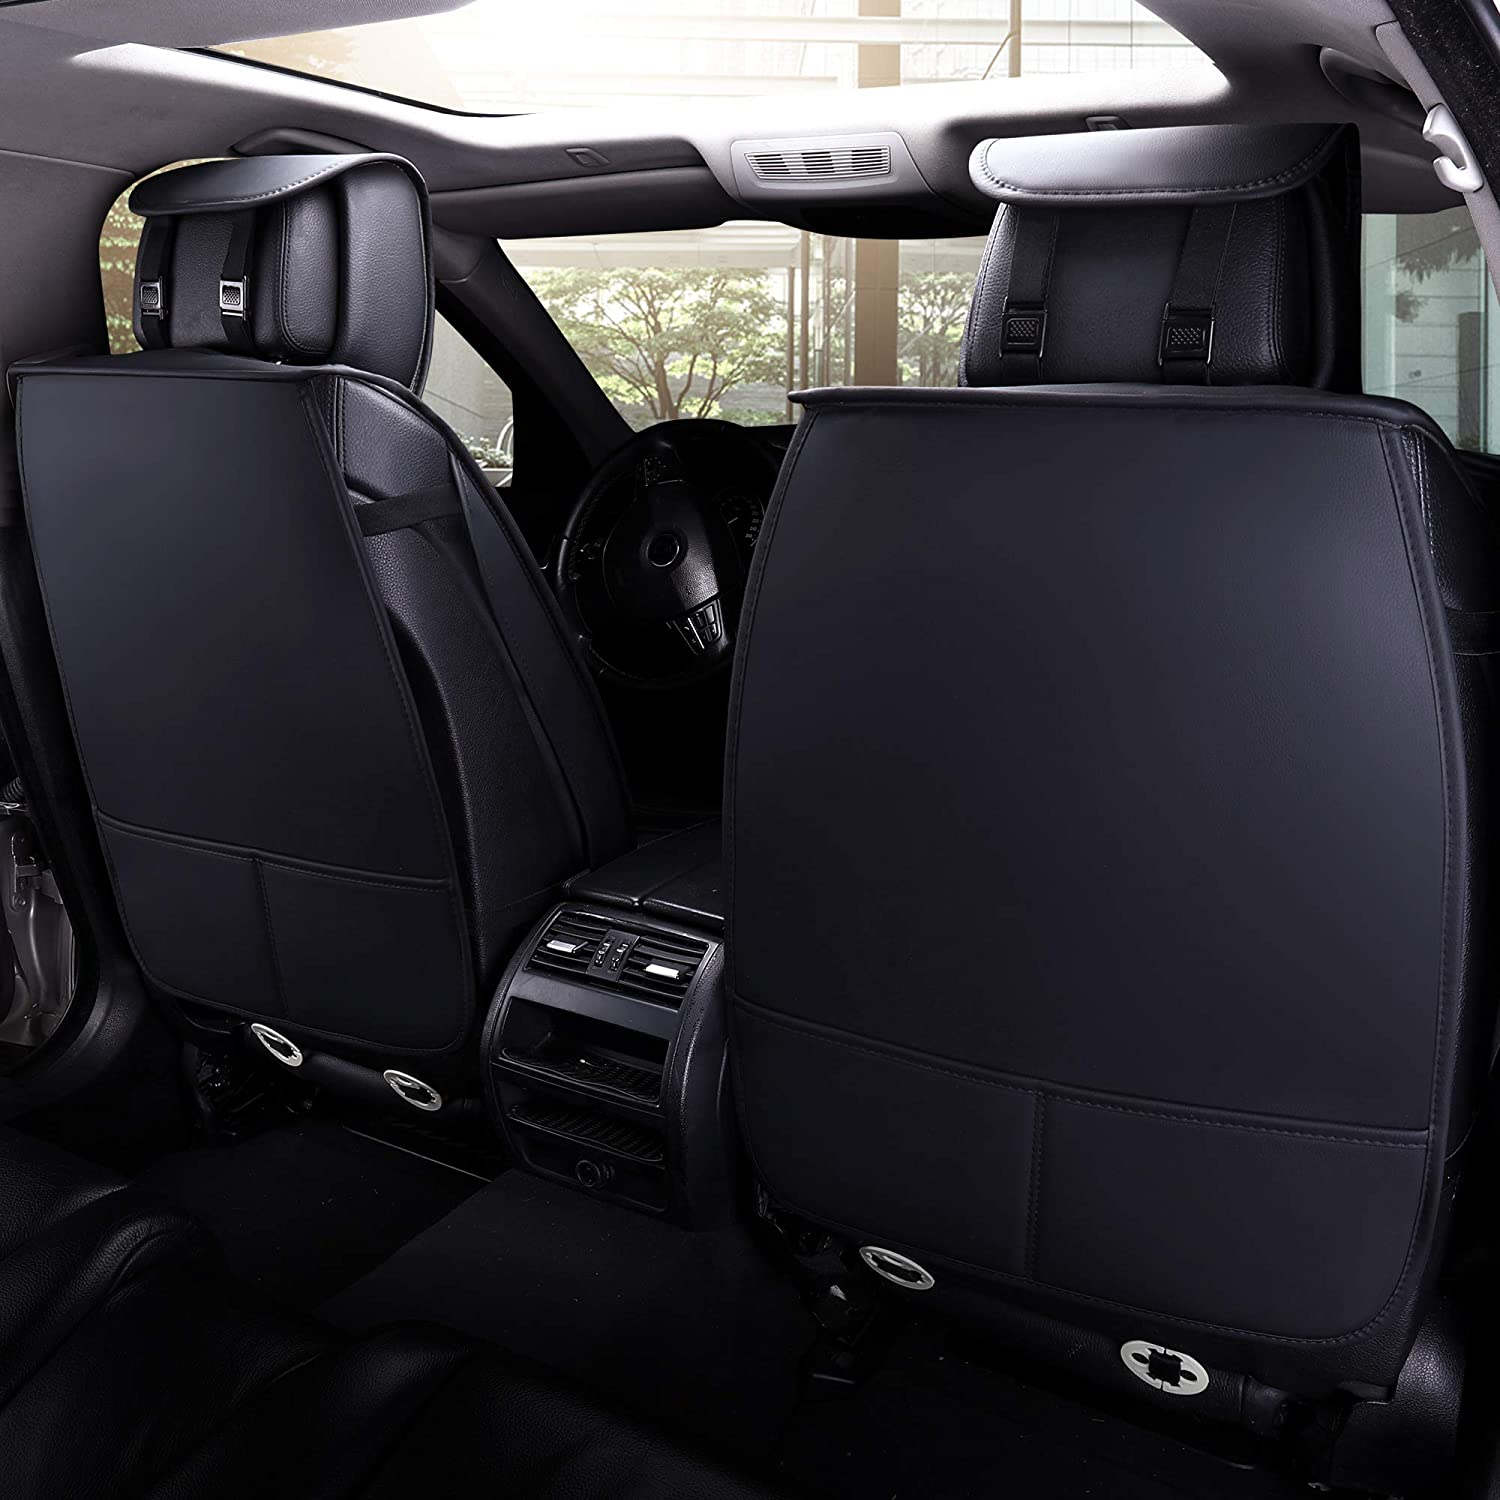 Aierxuan 5 Car Seat Covers Full Set with Waterproof Leather Black, full set Universal Fit for Most Sedan SUV